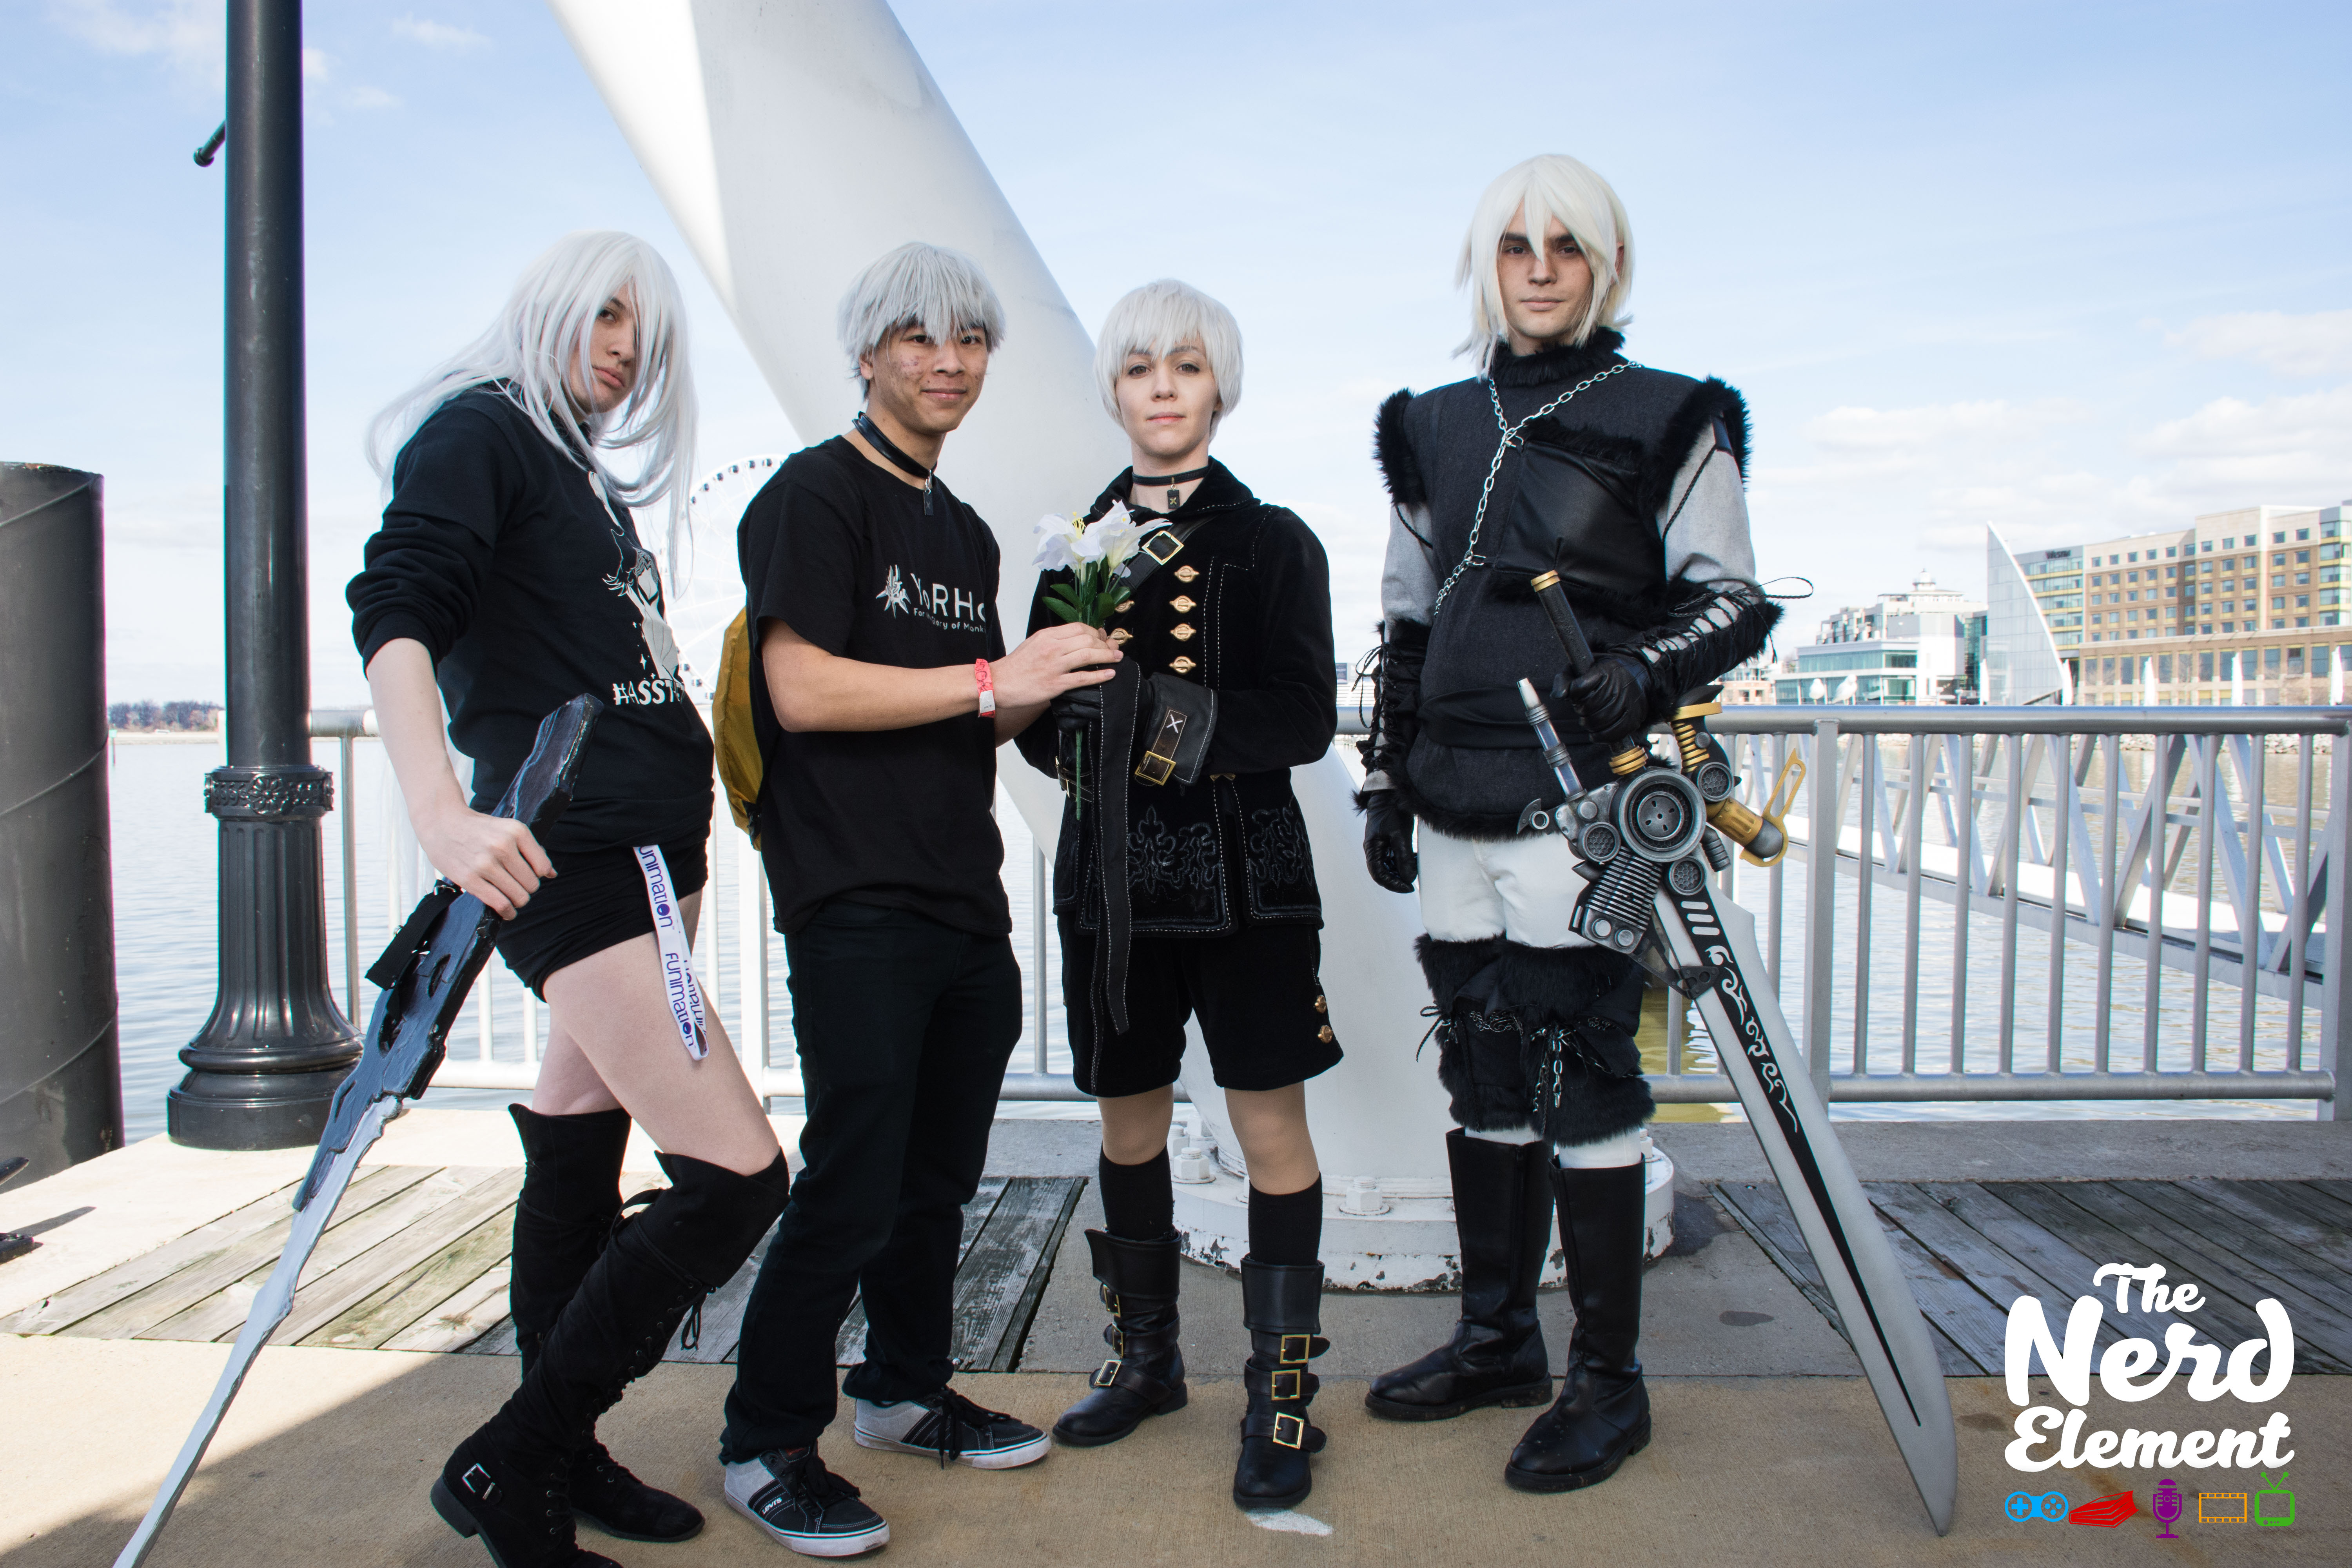 A2, Casual 9S, 9S, and Nier - Nier series Cosplayers: @laun_cosplay, @cashcoi, @chibidudecosplay, and @kradenine